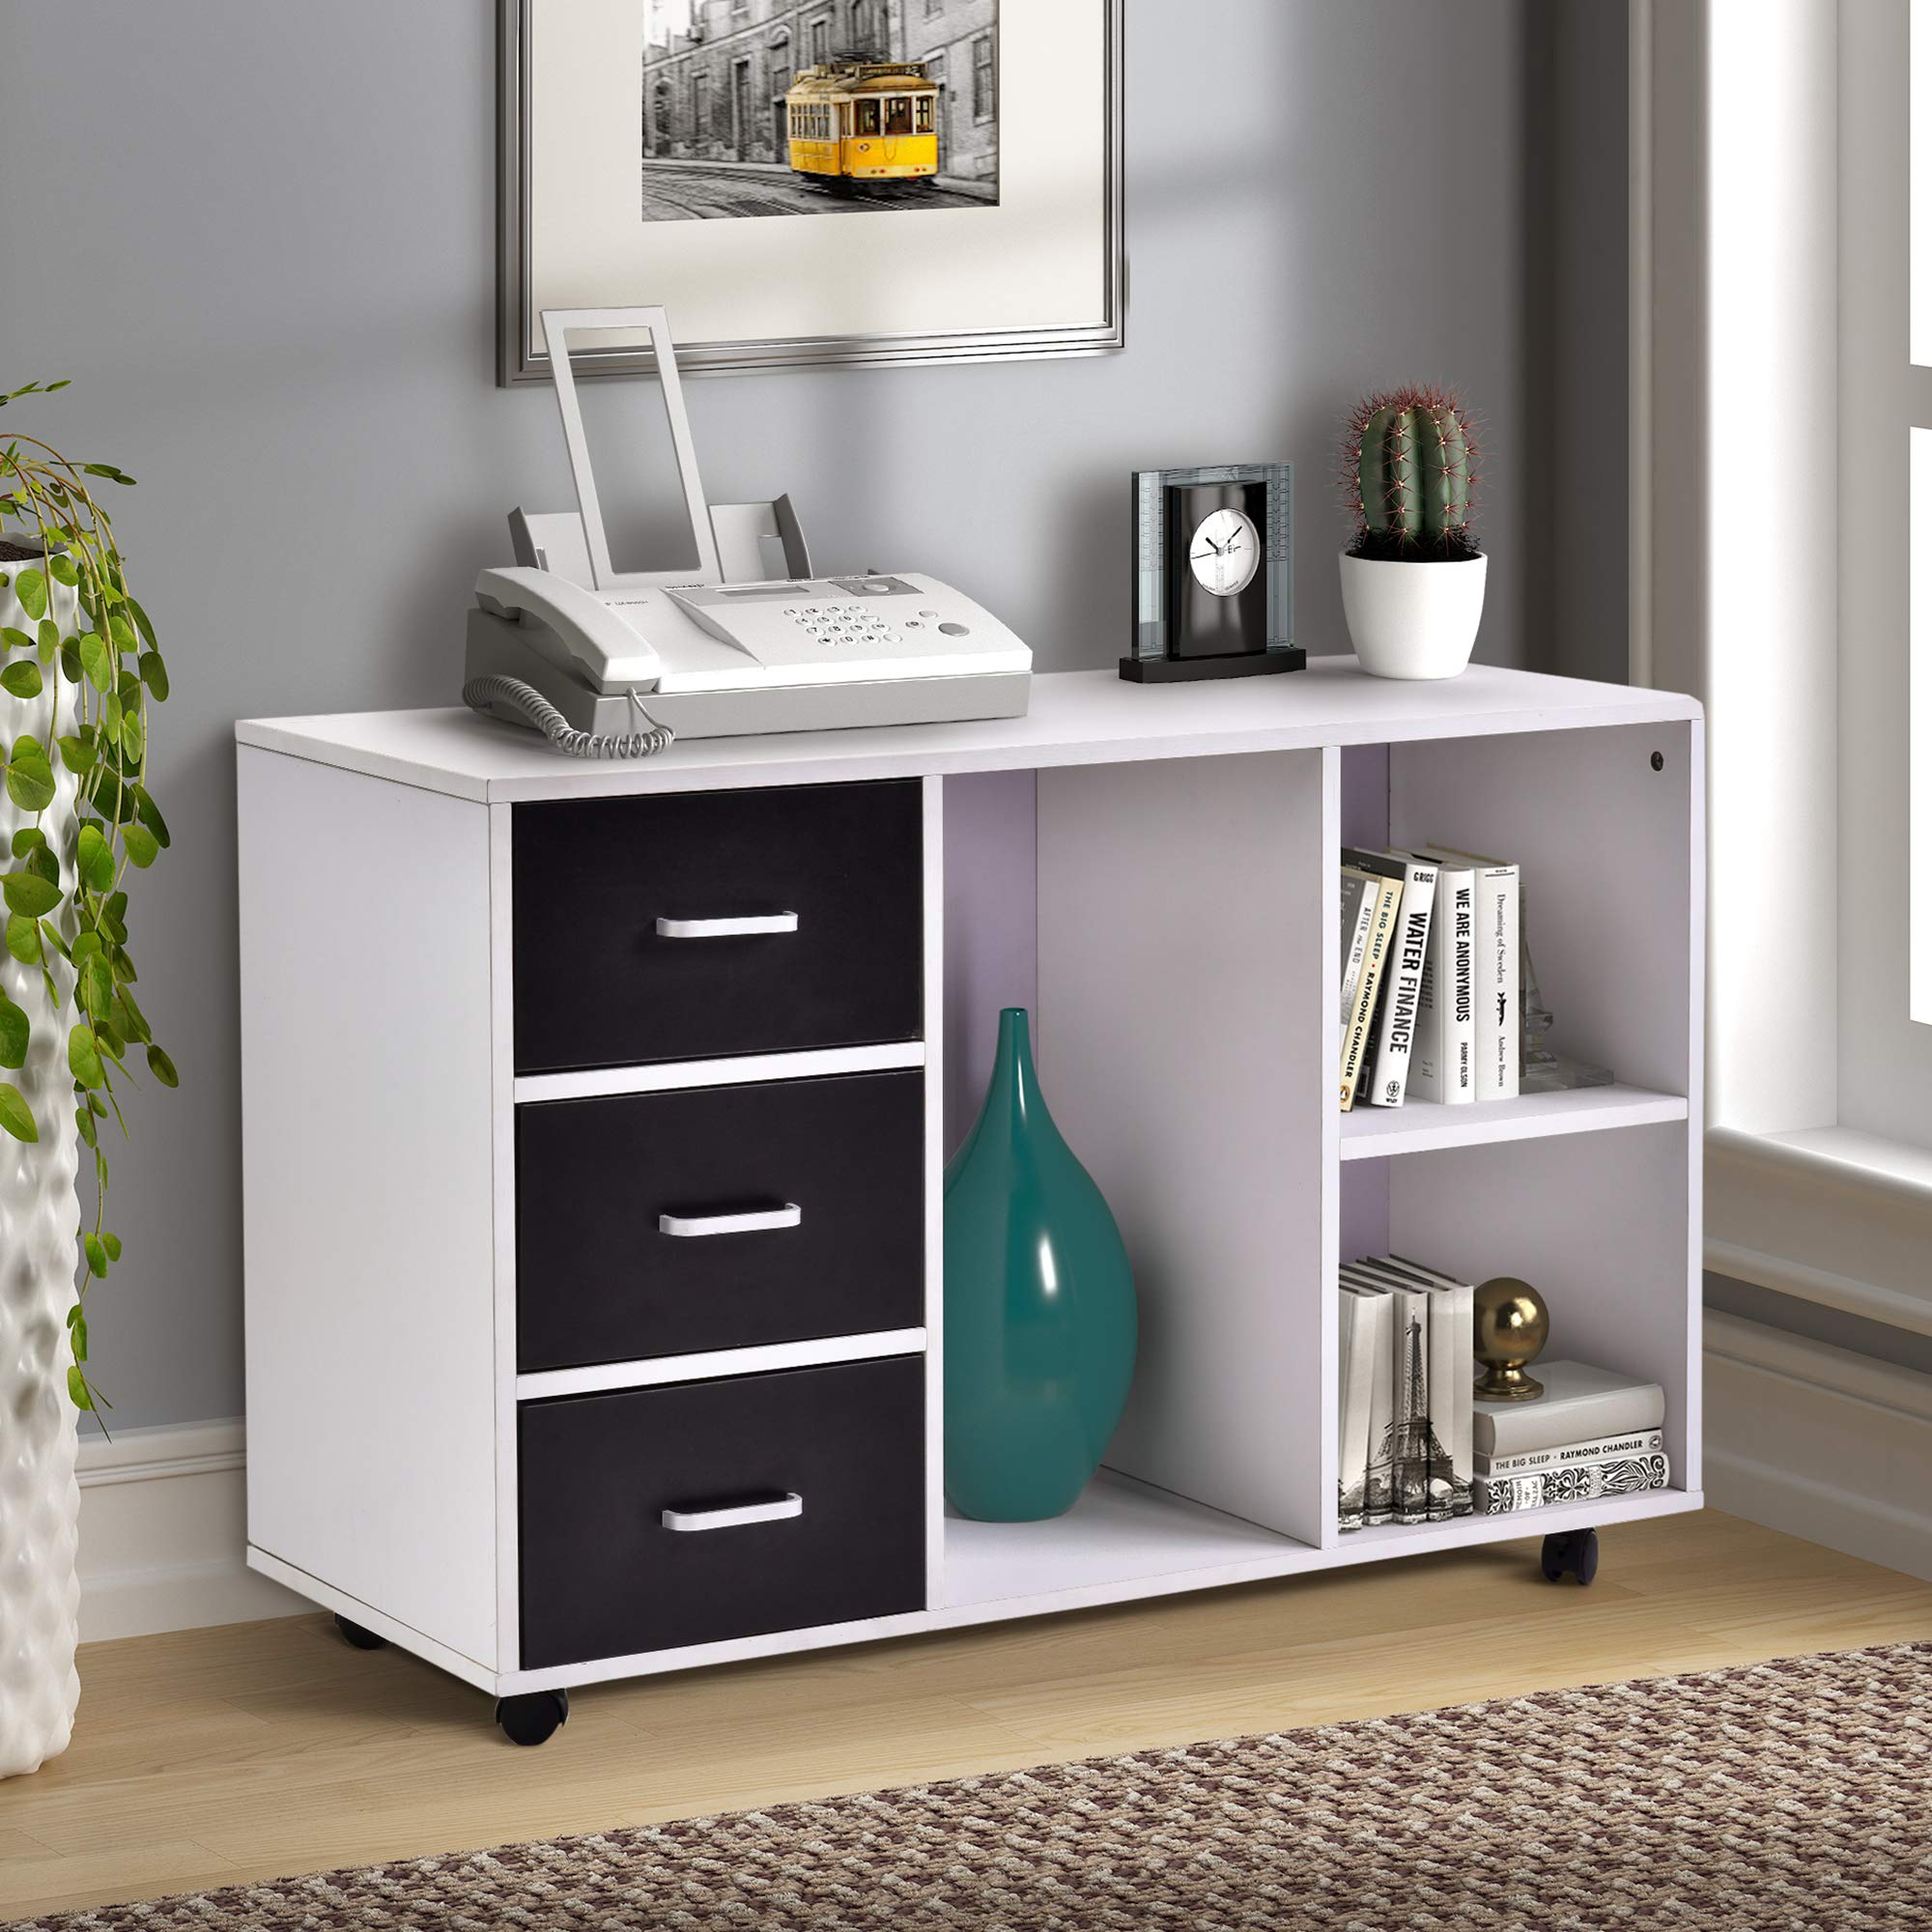 Mobile Lateral File Cabinet with Open Storage Shelves, 3 Drawers Office Filing Cabinet on Wheels, White